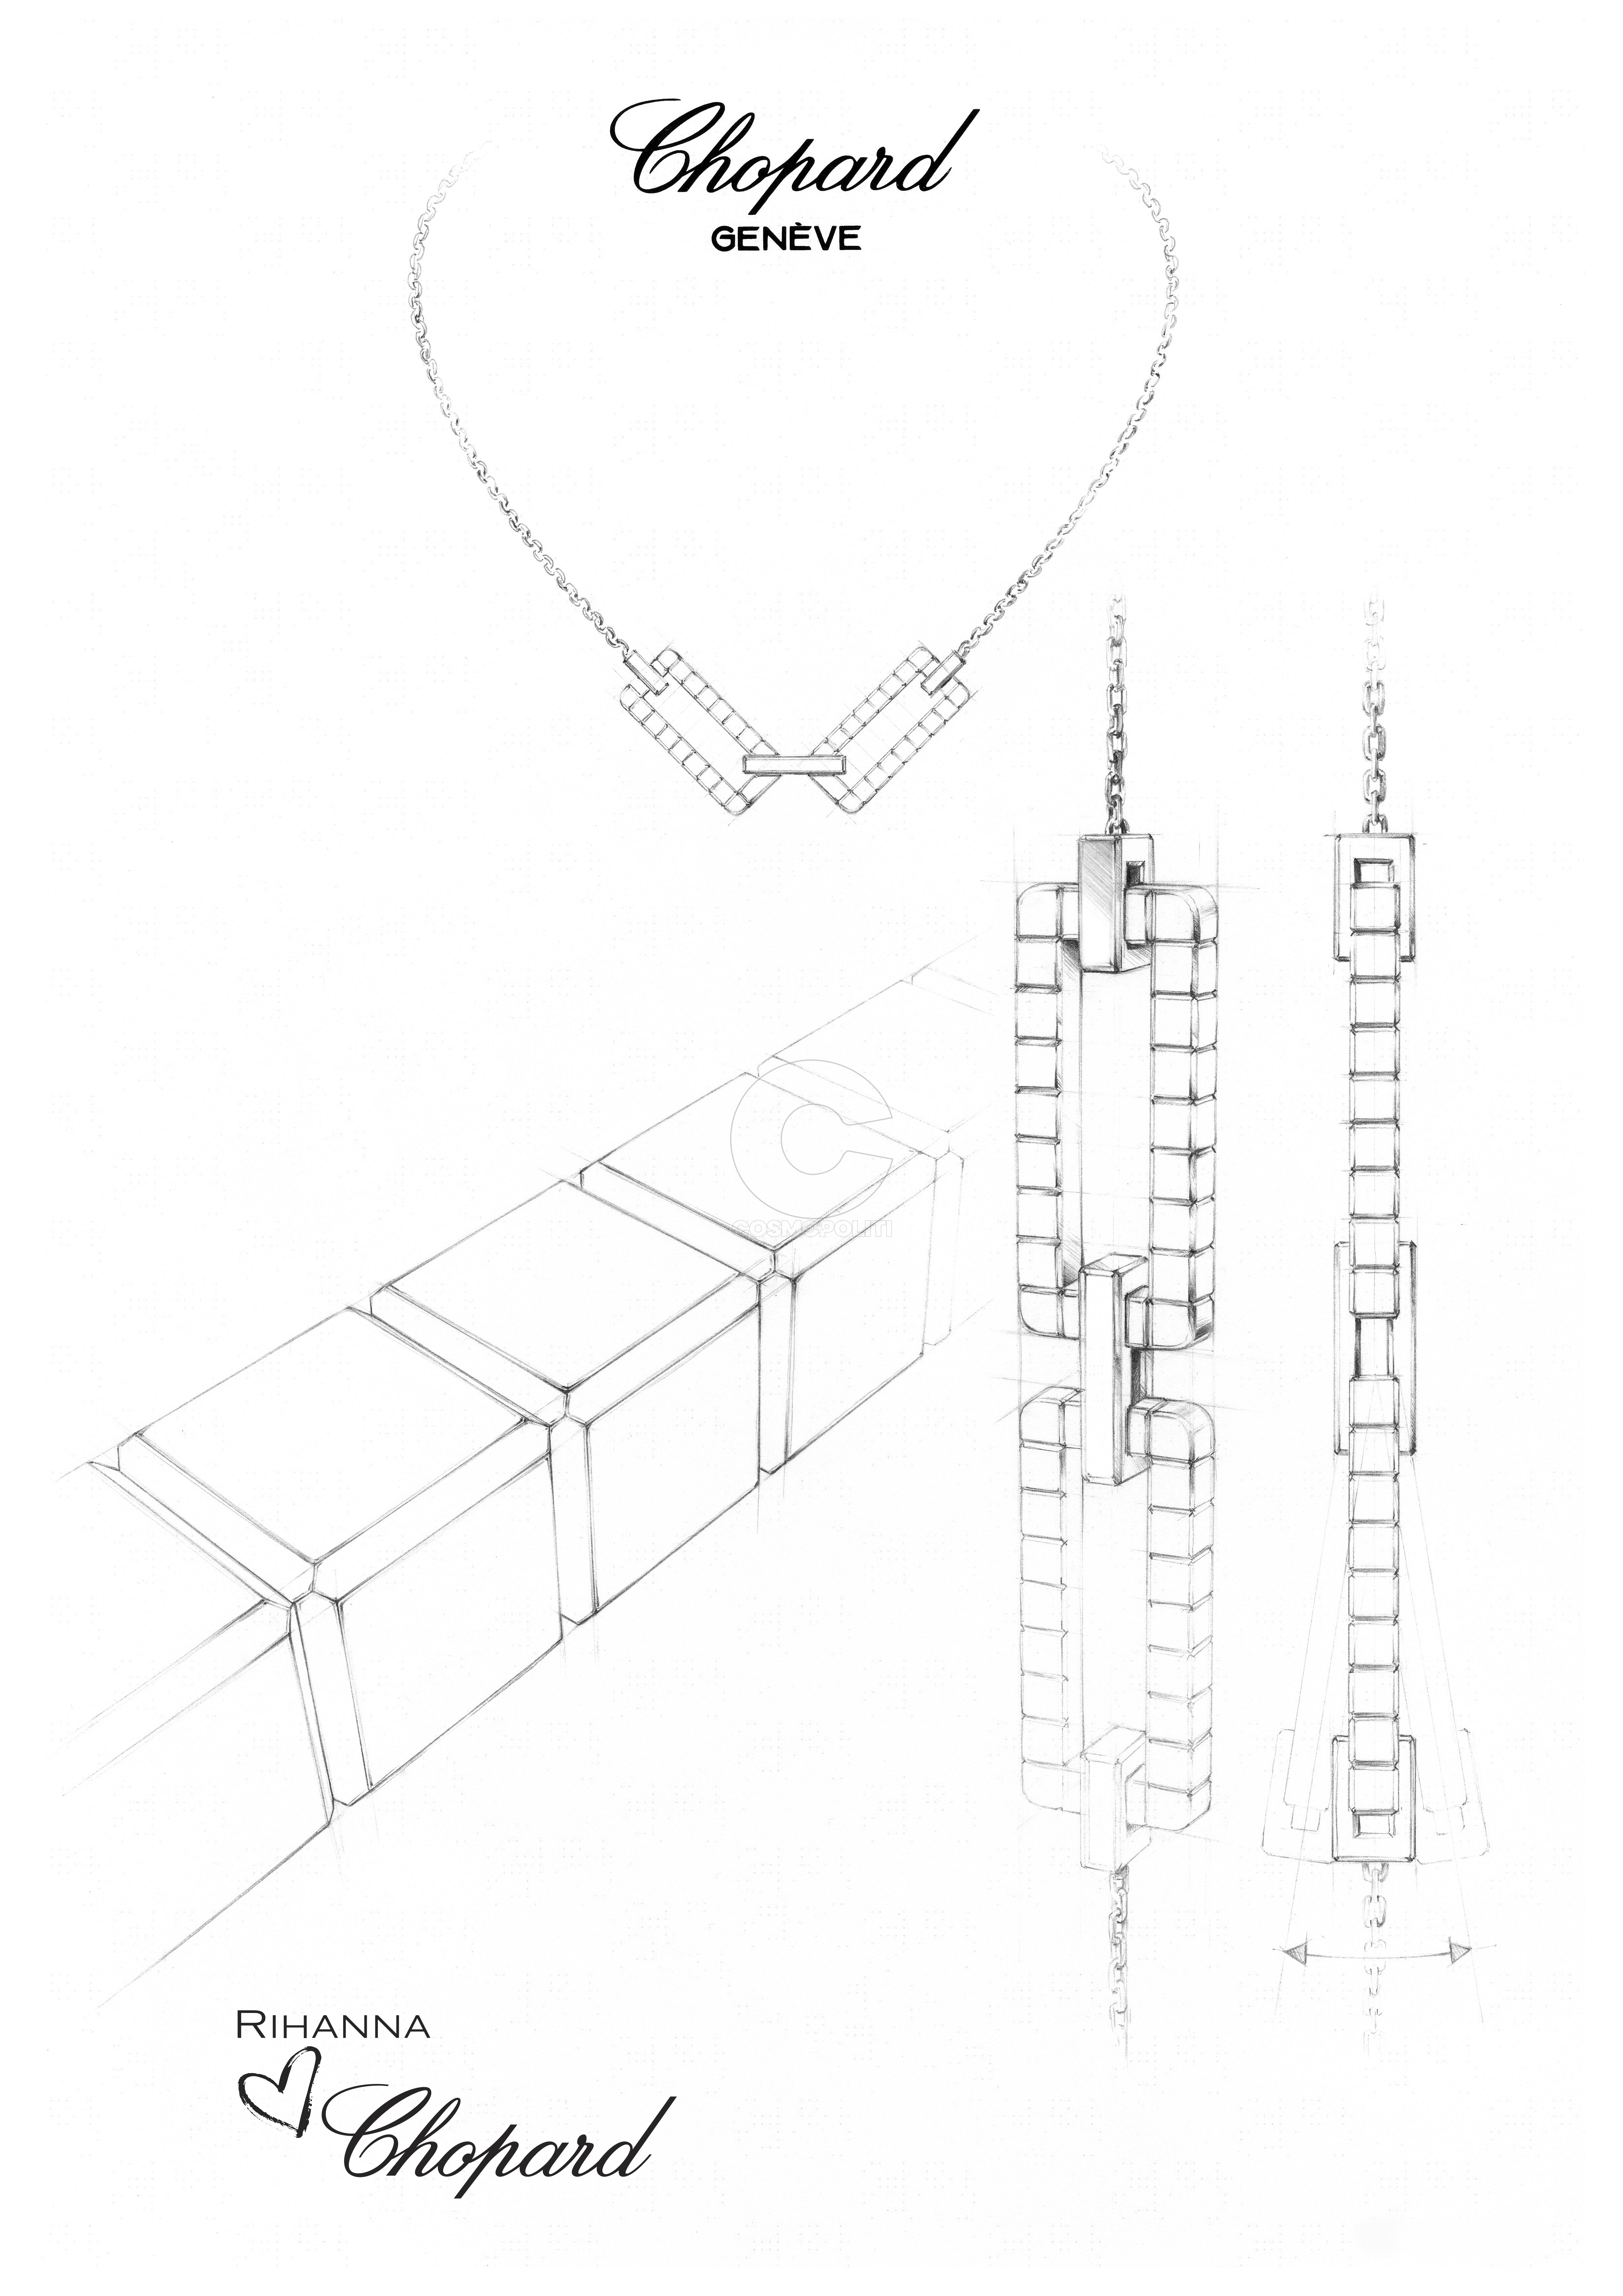 RIHANNA ♥ CHOPARD Joaillerie collection sketch